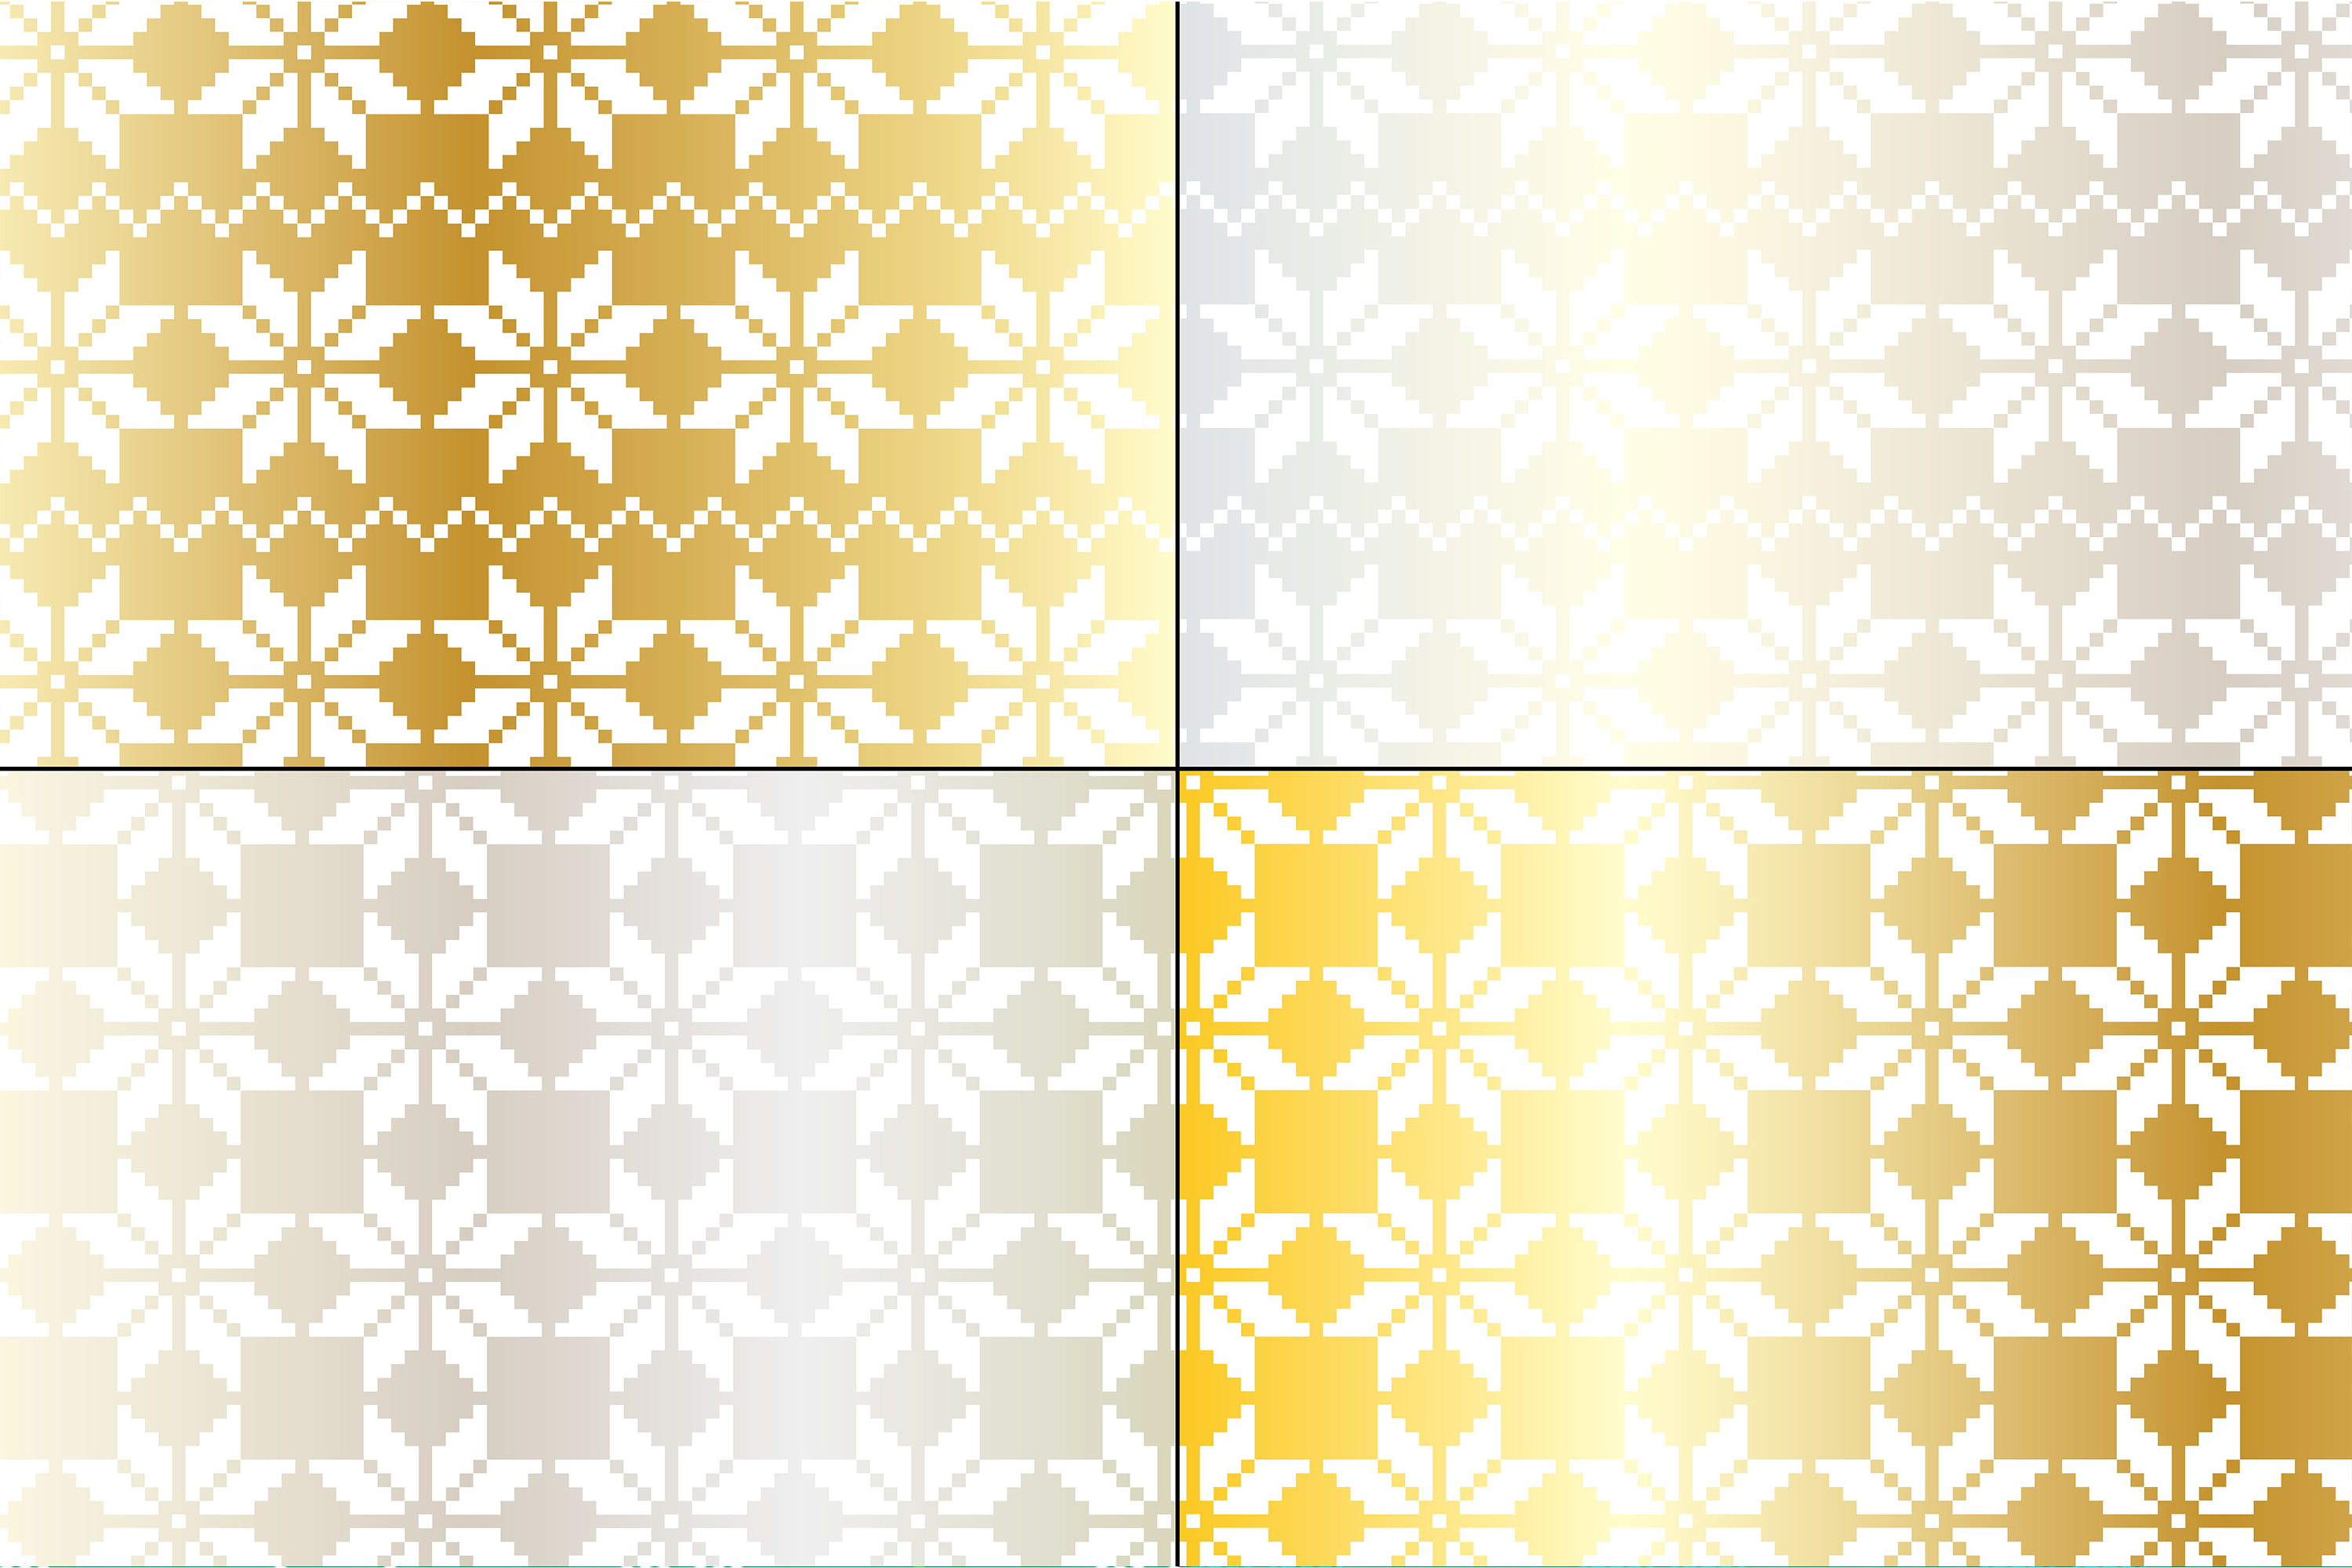 Silver & Gold Nordic Patterns example image 2